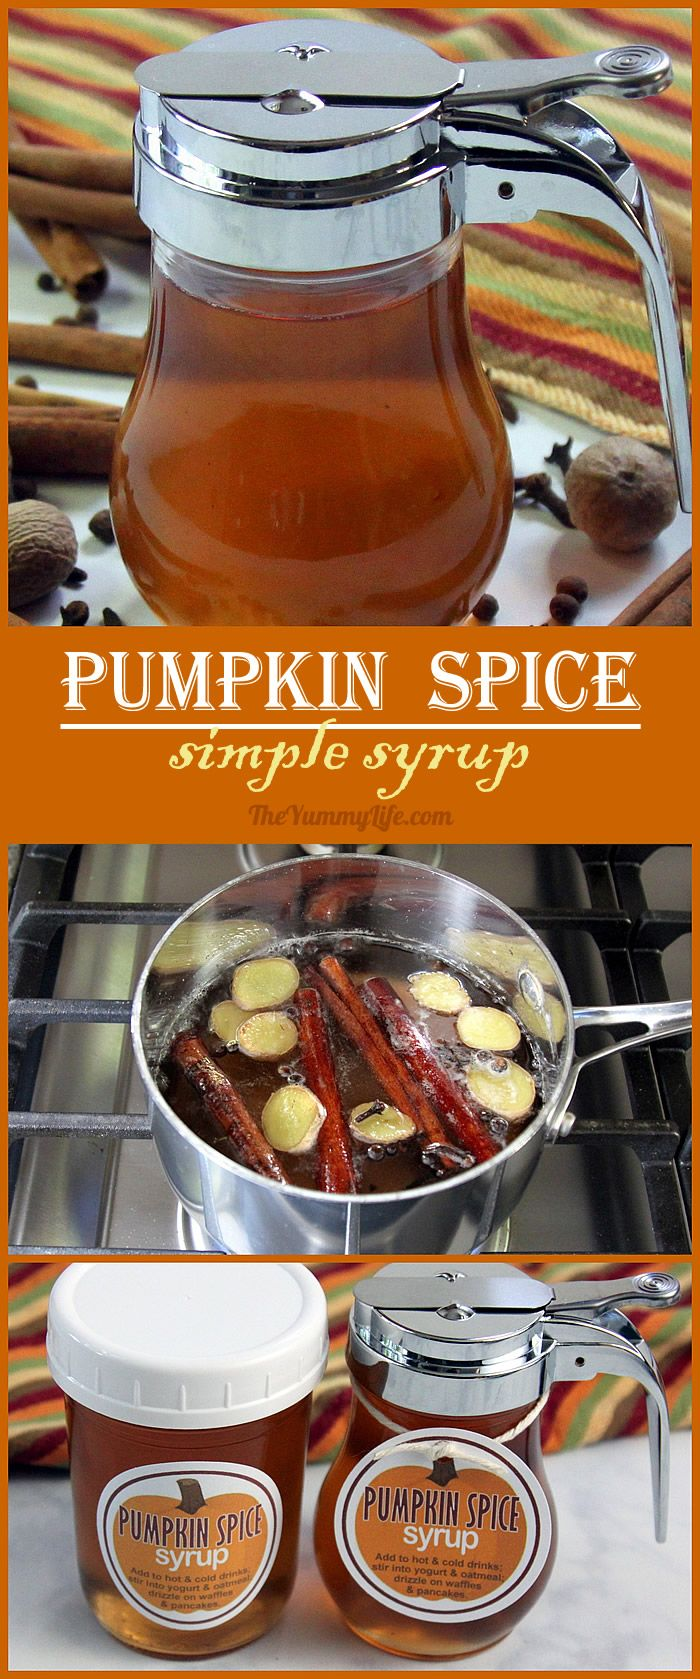 Pumpkin Spice Simple Syrup is so easy to make at home. Add this favorite flavor of Fall to hot and cold drinks--coffee, tea, cider, juice, cocktails. Stir it into yogurt and oatmeal. Blend it in smoothies and milk shakes. Drizzle it on waffles, pancakes or ice cream. Printable labels are provided for making gift jars. From The Yummy Life.